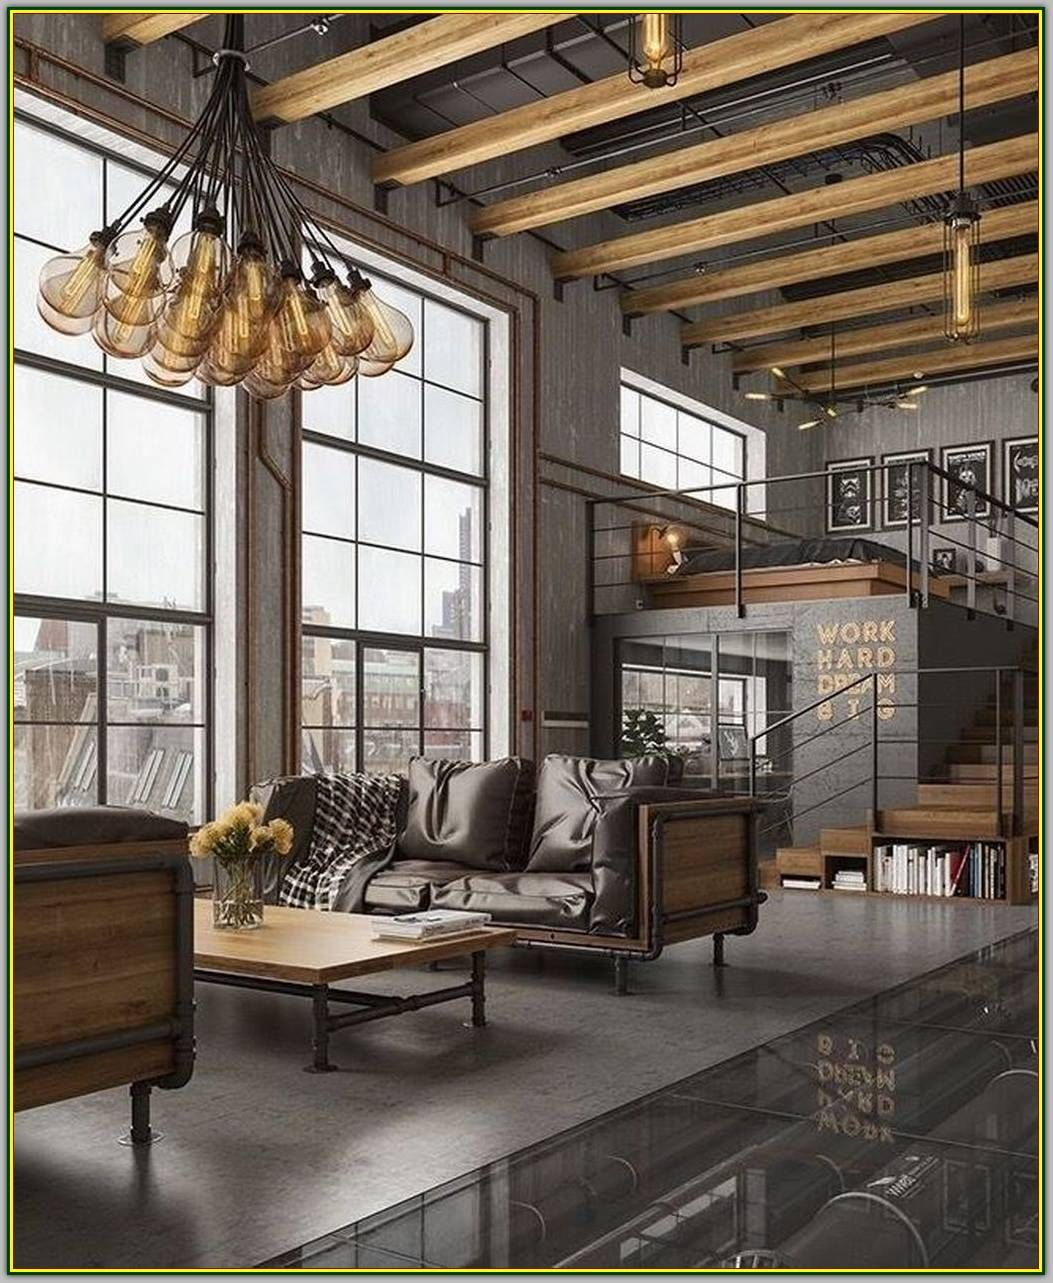 Design A Perfect Dining Room Interior With These Easy Tips Modern Interior Design Industrial Style Living Room Industrial Home Design Industrial Interior Design